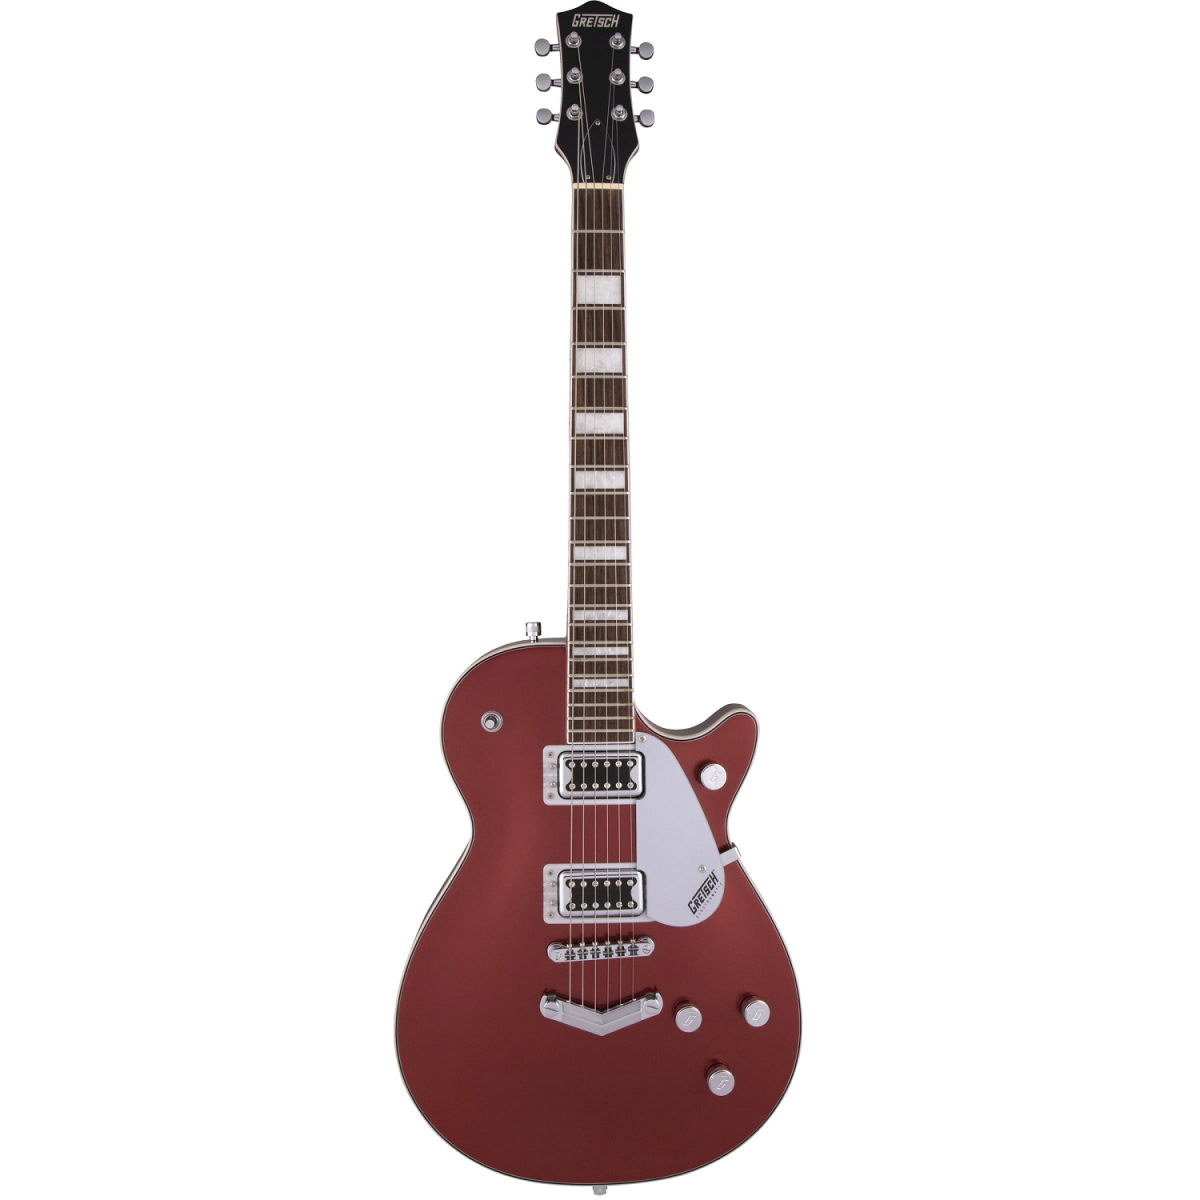 Gretsch G5220 Electromatic Jet Red